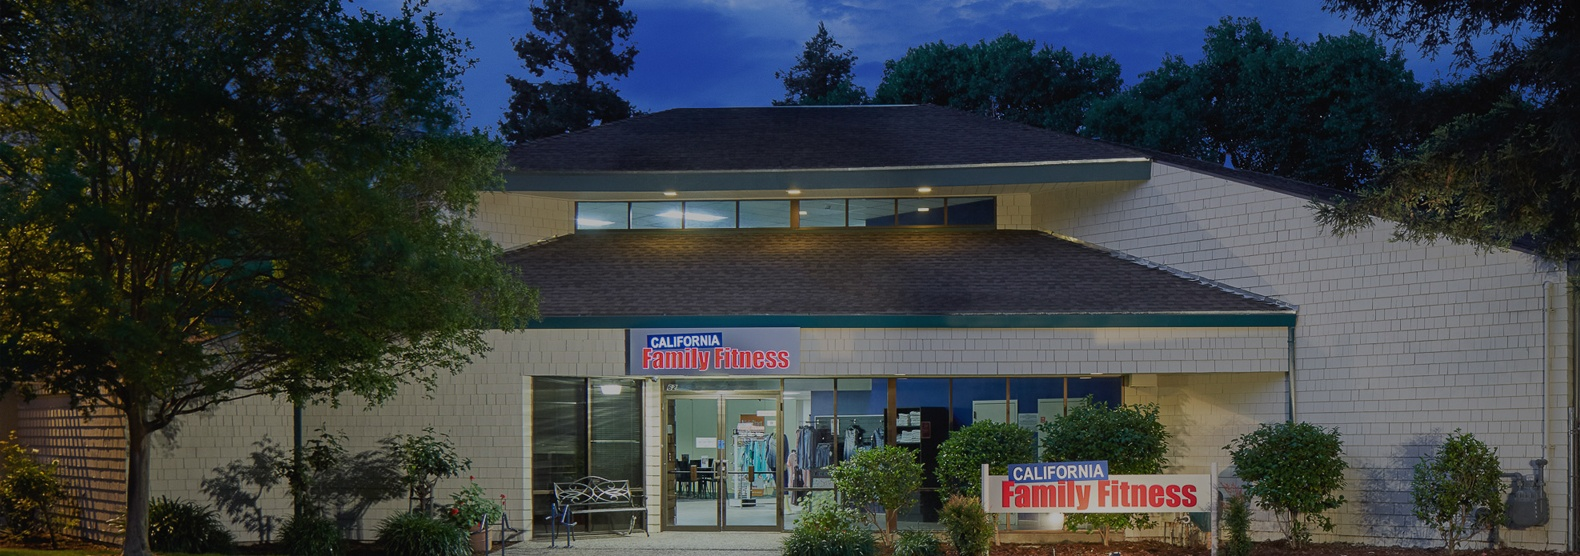 greenhaven gym california family fitness